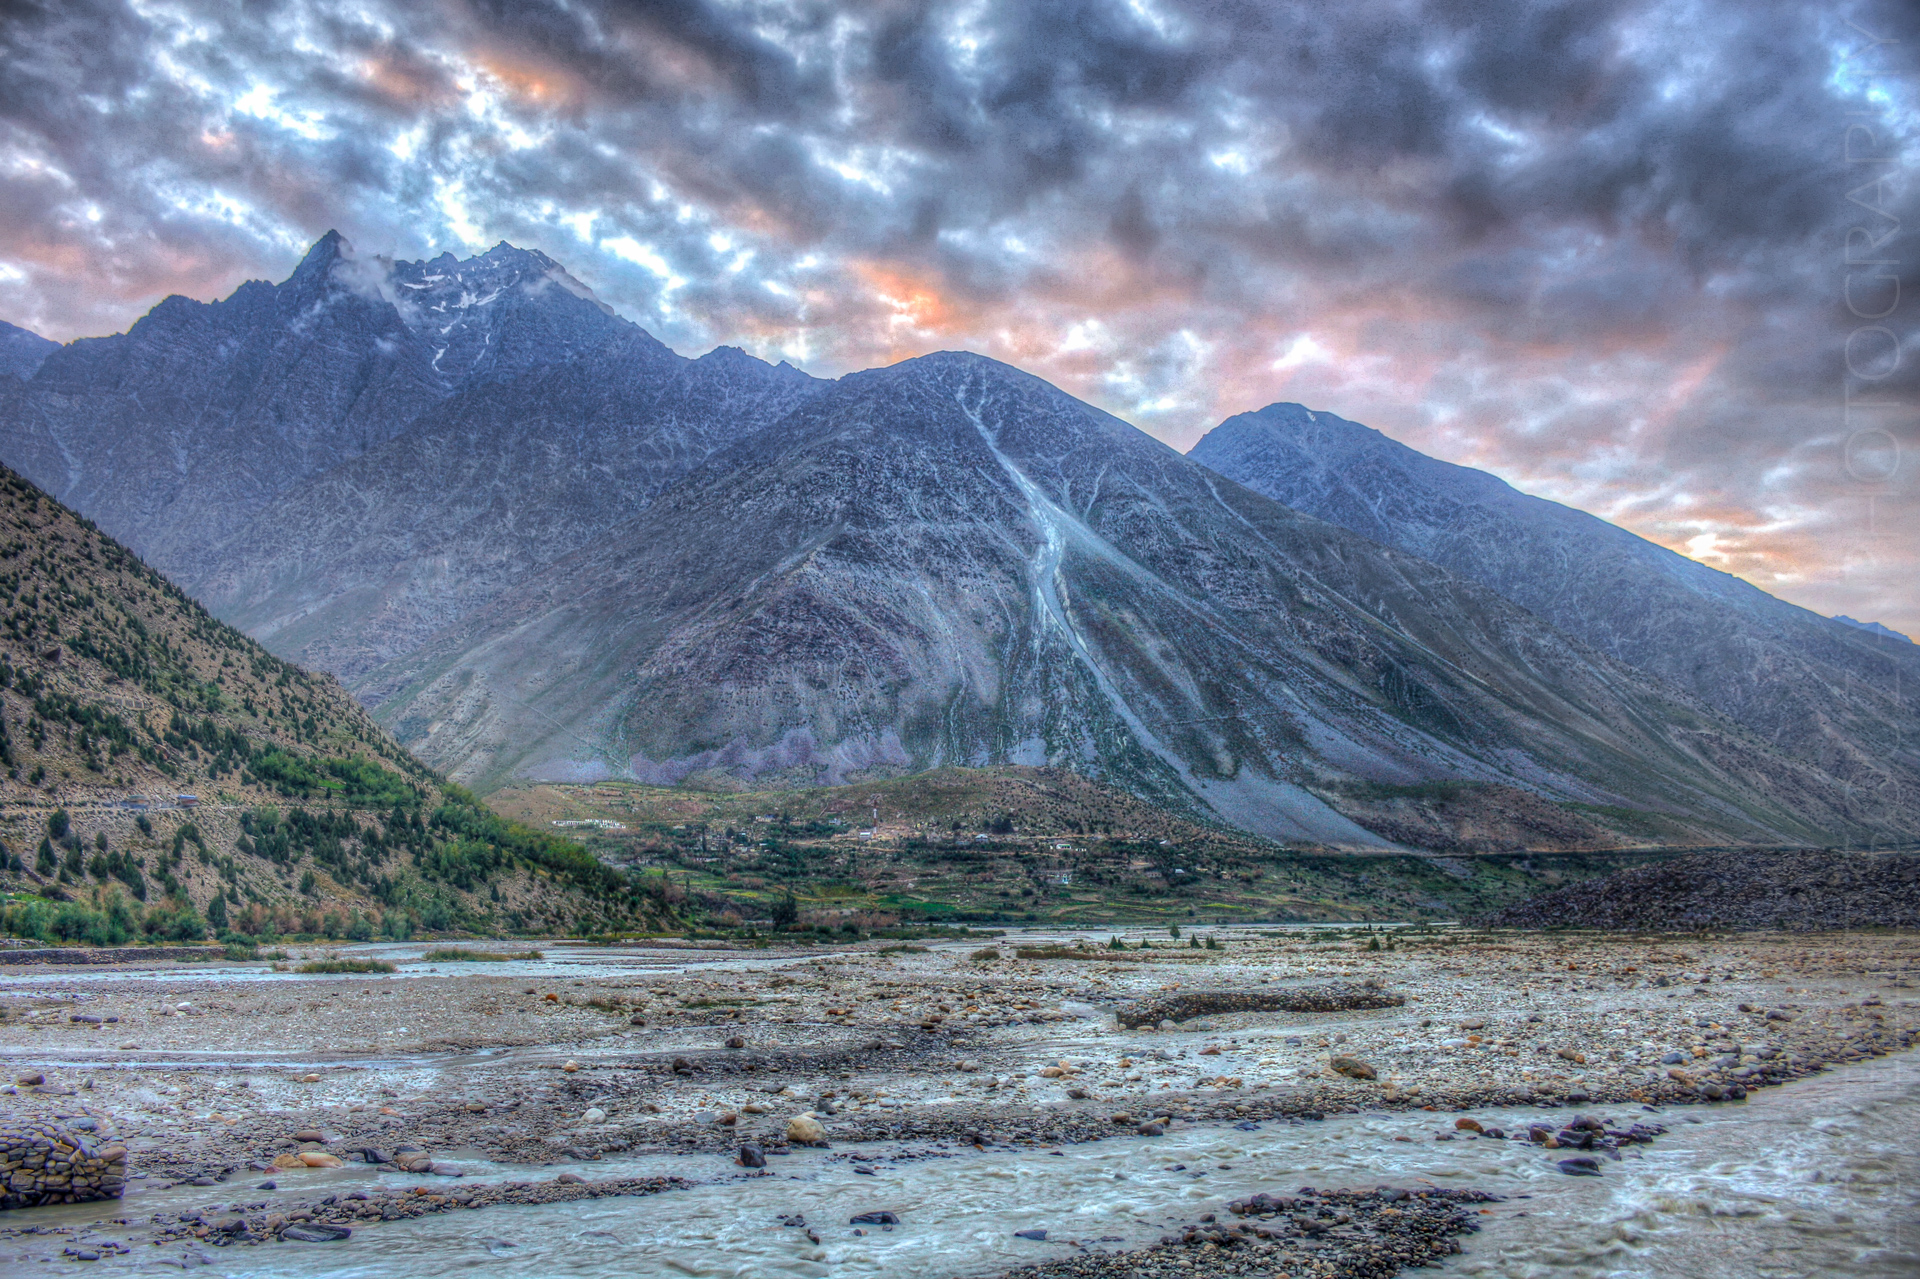 Dawn at Sarchu